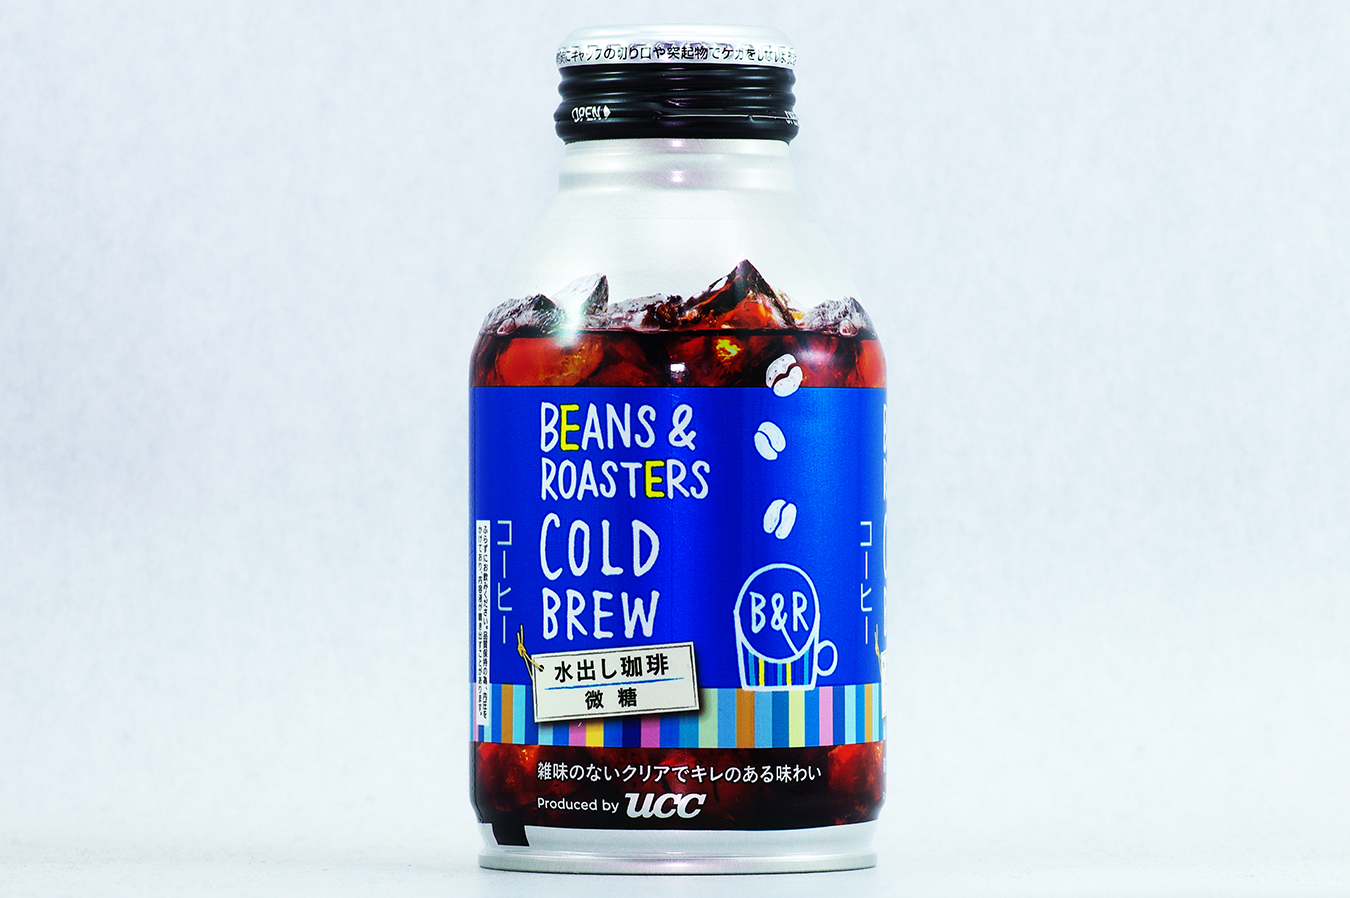 UCC BEANS & ROASTERS COLD BREW 微糖 2017年6月